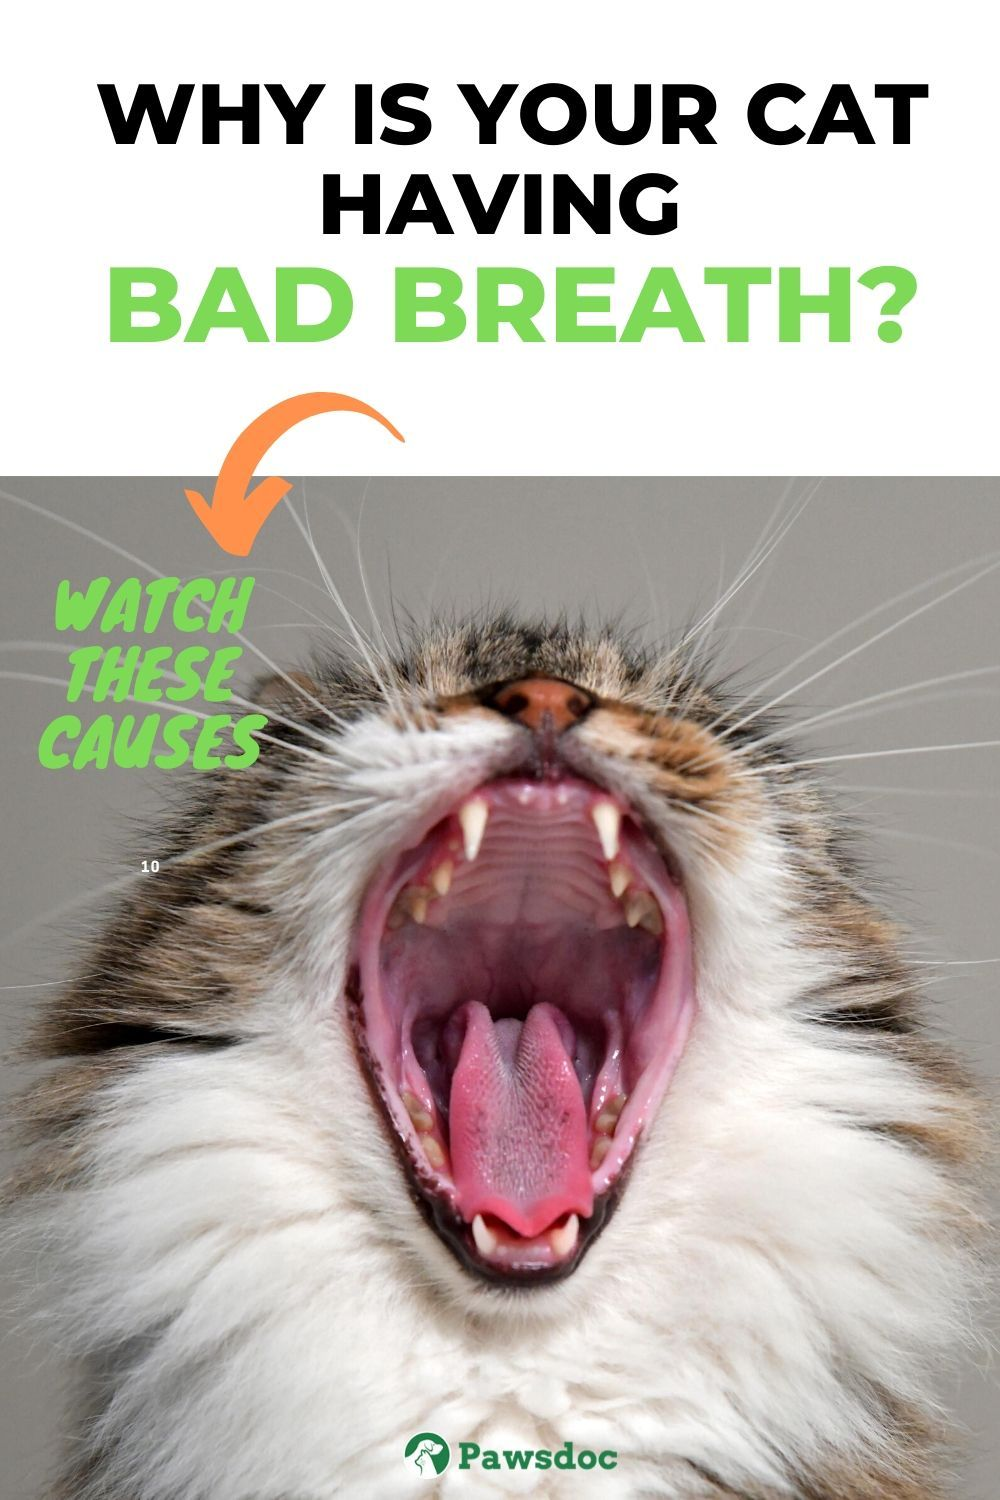 My Cat Has Bad Breath I Common Causes And Remedies In 2020 Cat Bad Breath Cat Health Bad Breath Remedy